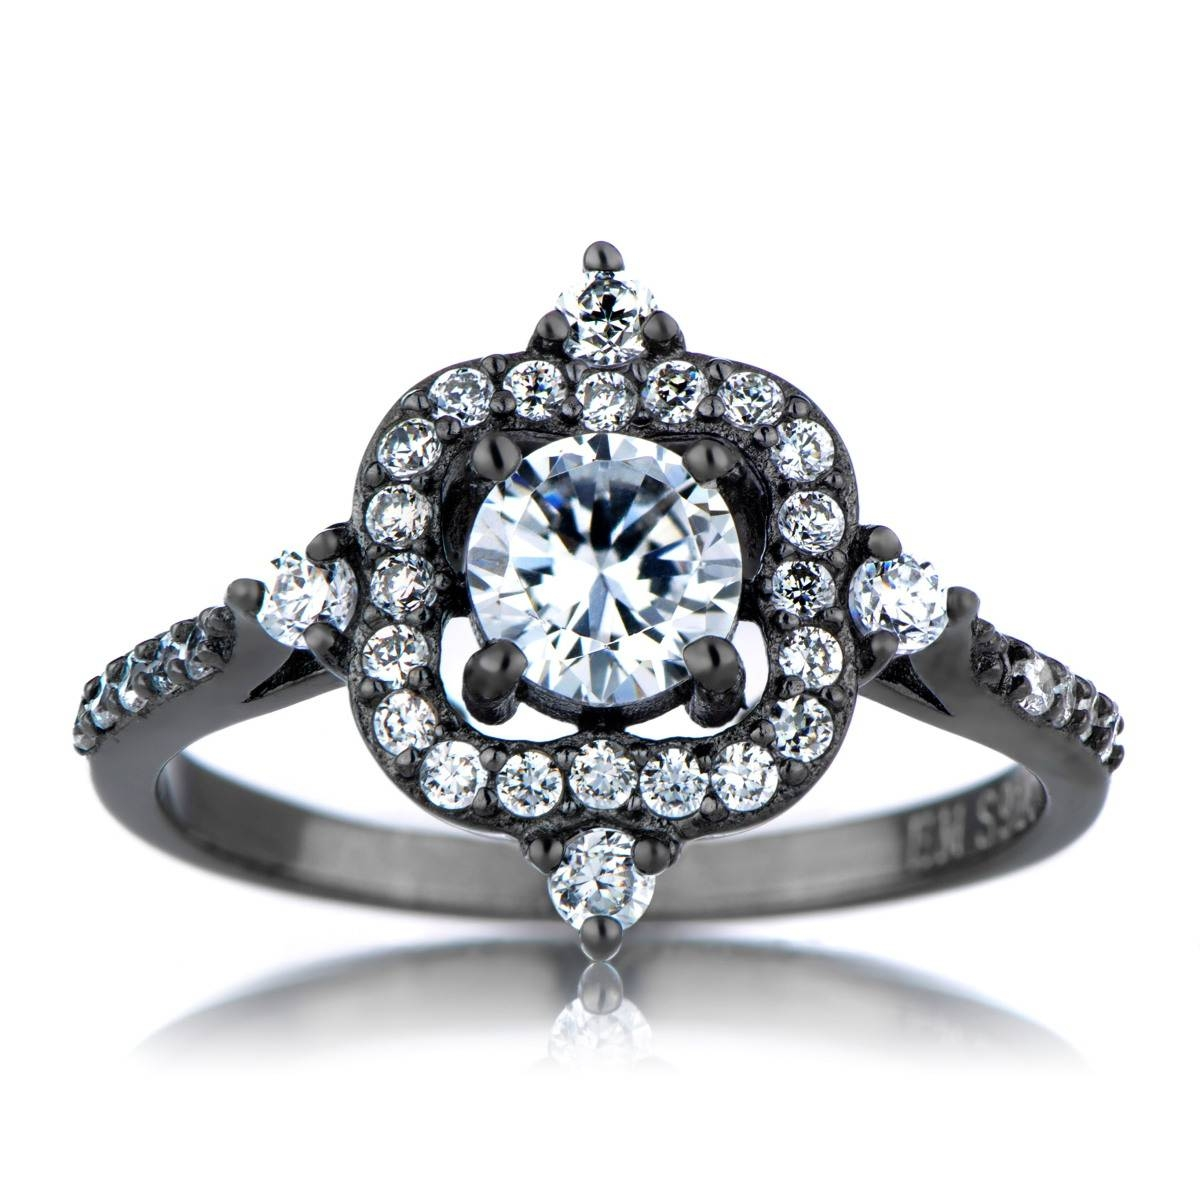 Cubic Zirconia Engagement Rings | Cz Engagement Rings | Cz Rrings With Antique Inspired Wedding Rings (View 6 of 15)